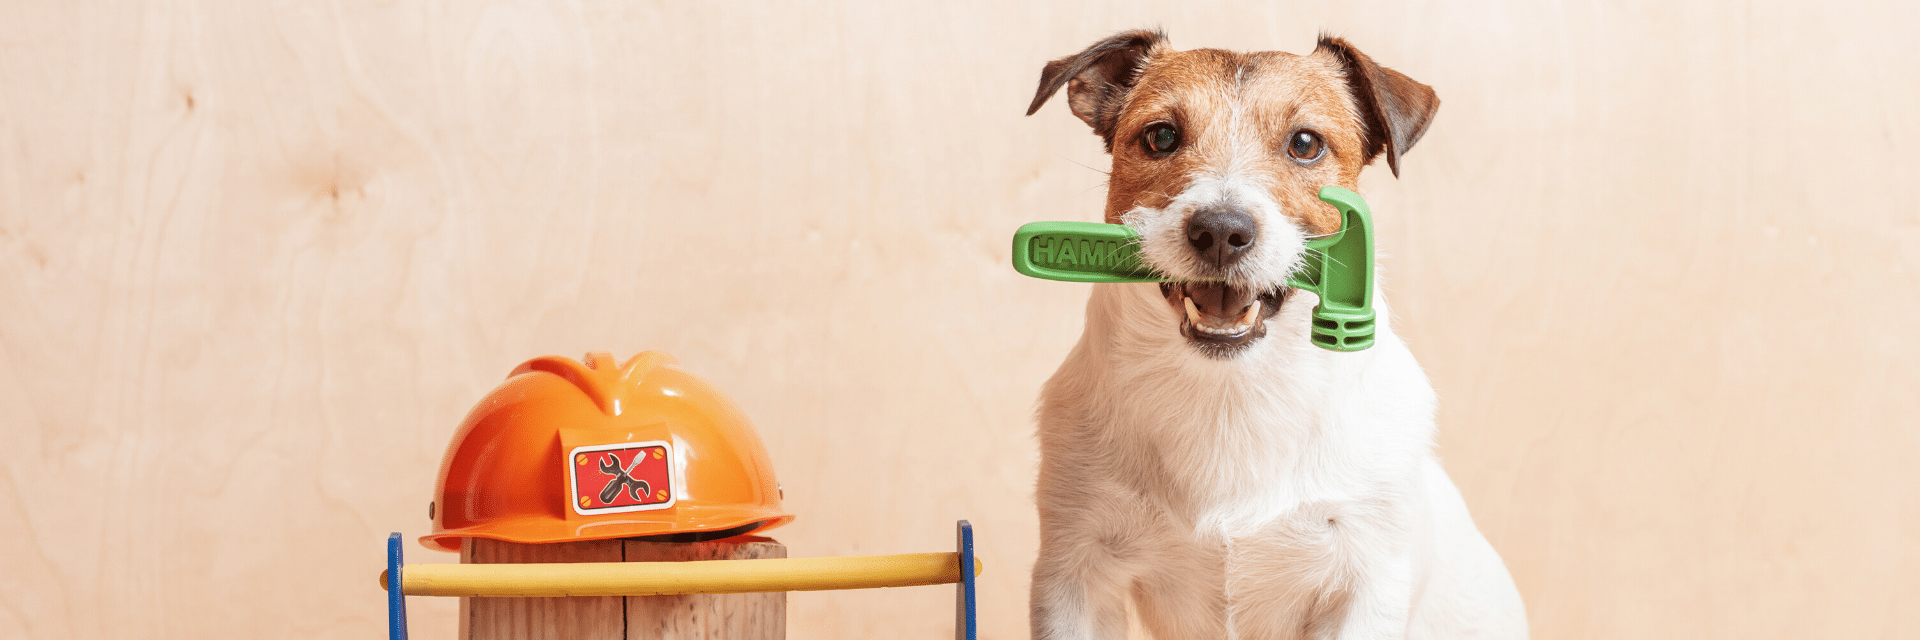 Dog with Tools